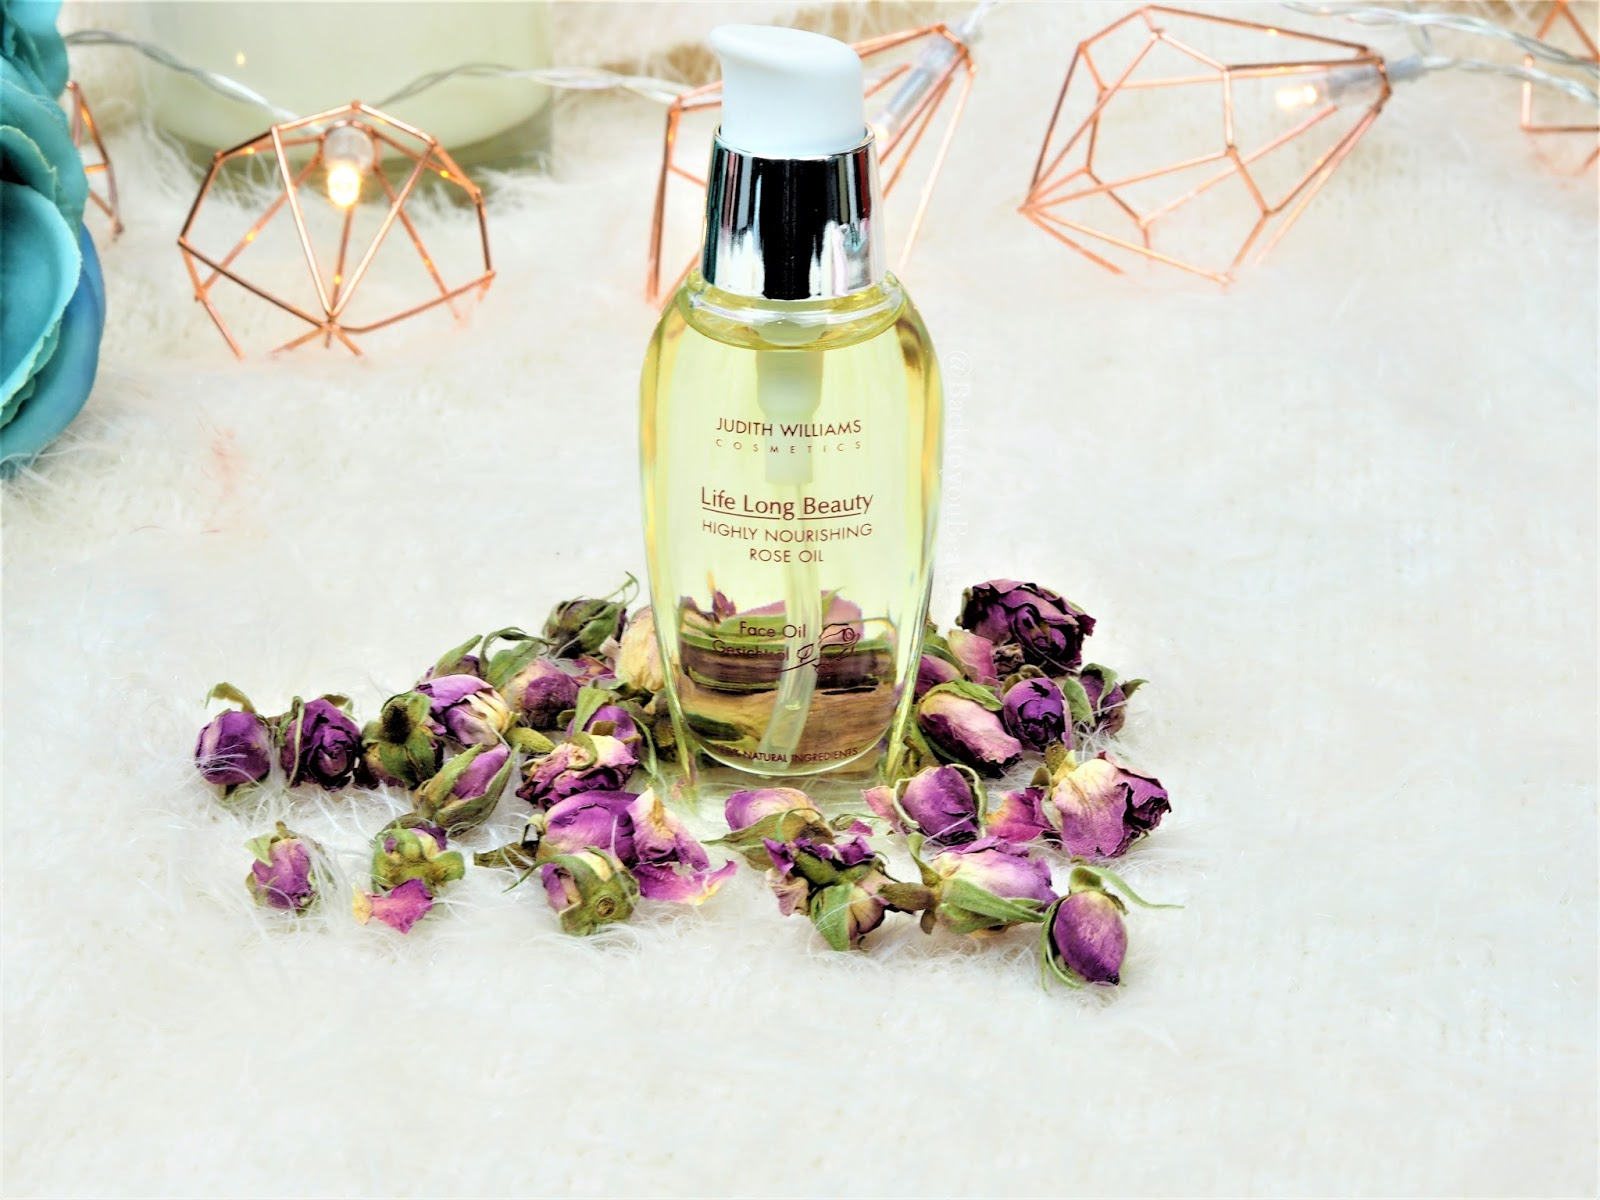 Life Long Beauty Rose Oil